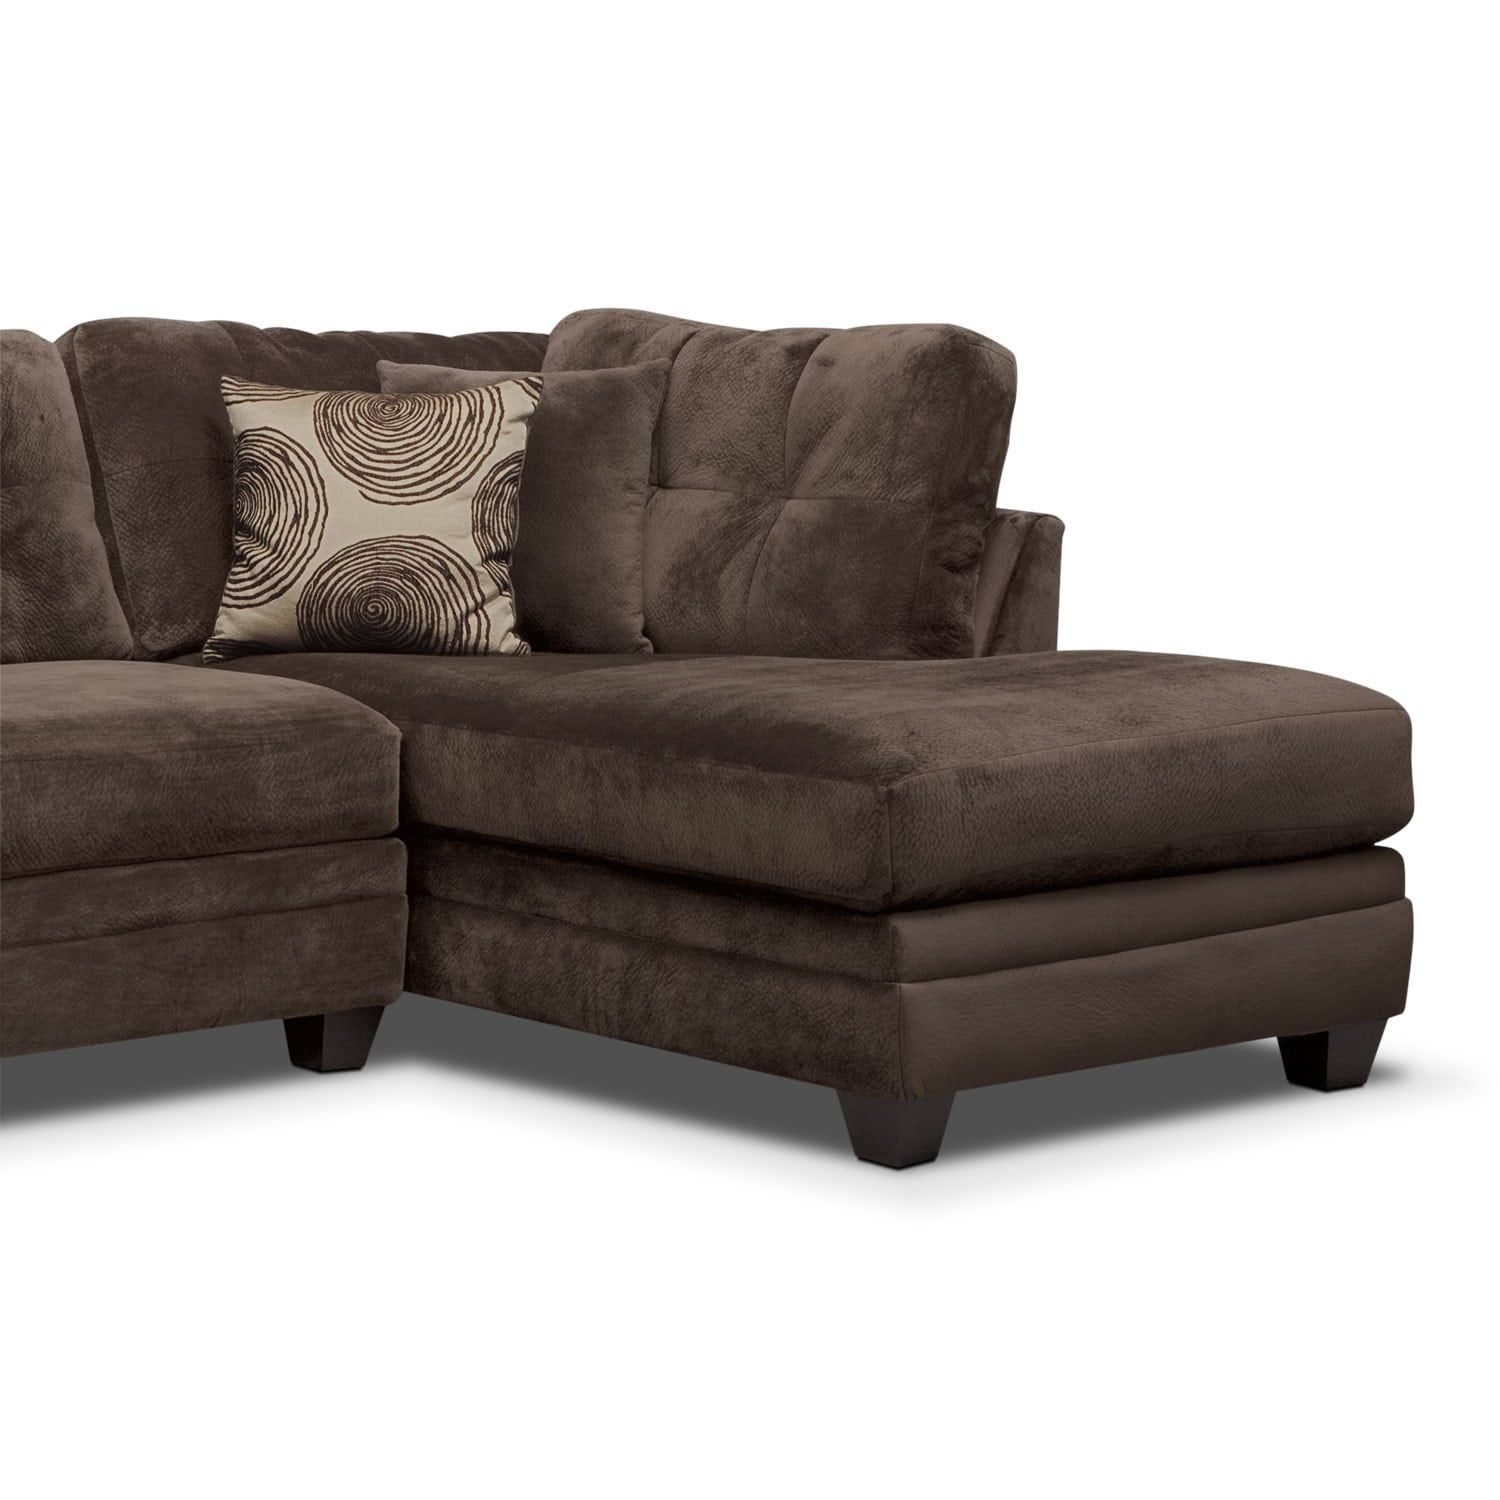 Cordelle 2 Piece Right Facing Chaise Sectional Chocolate